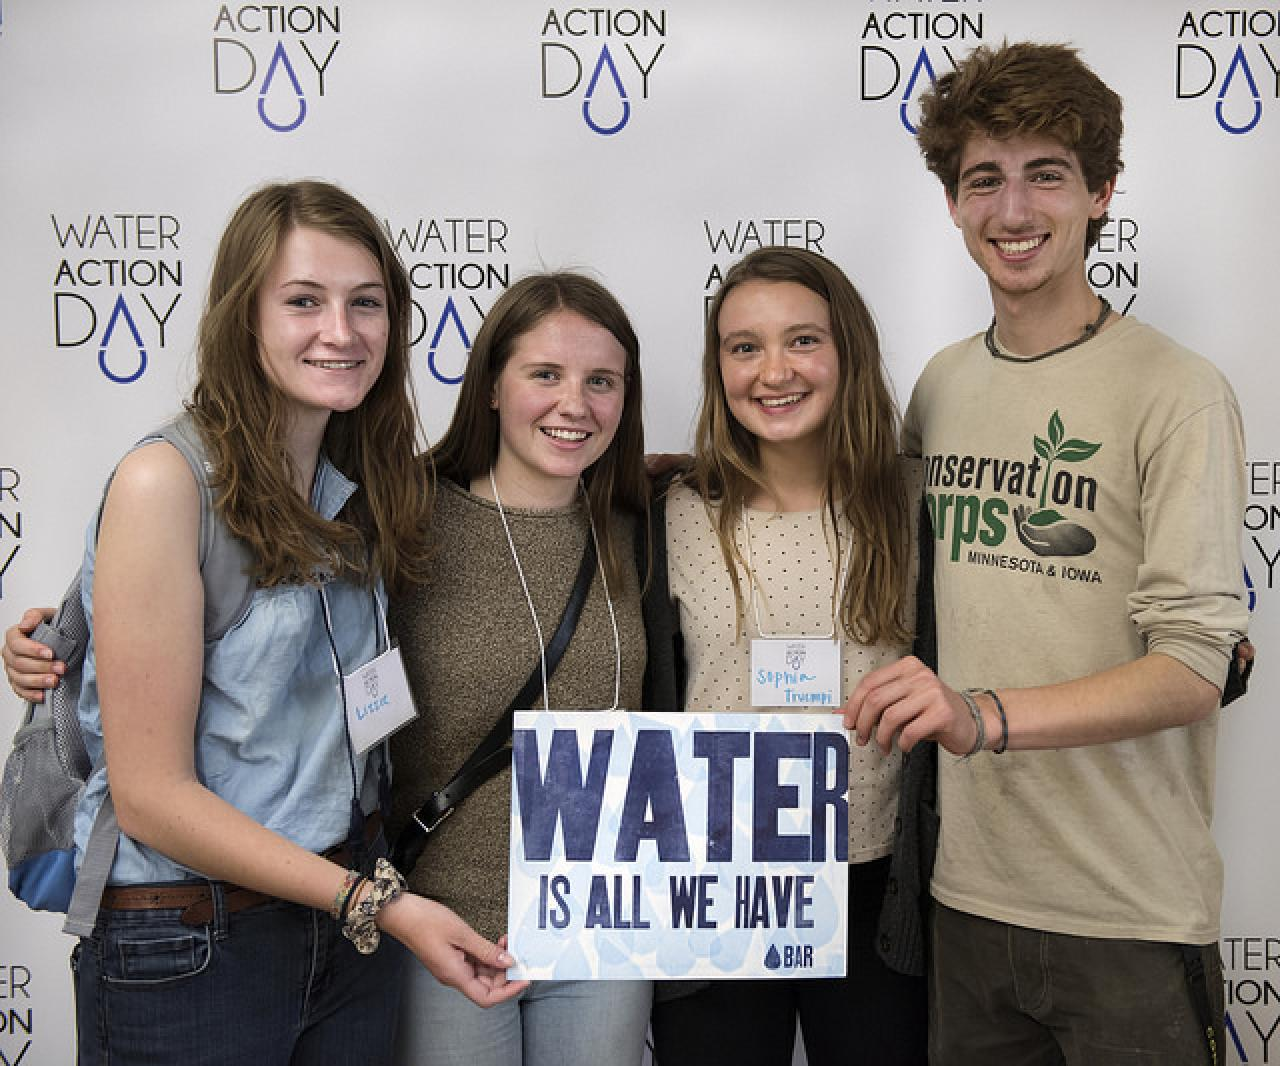 All generations deserve clean water